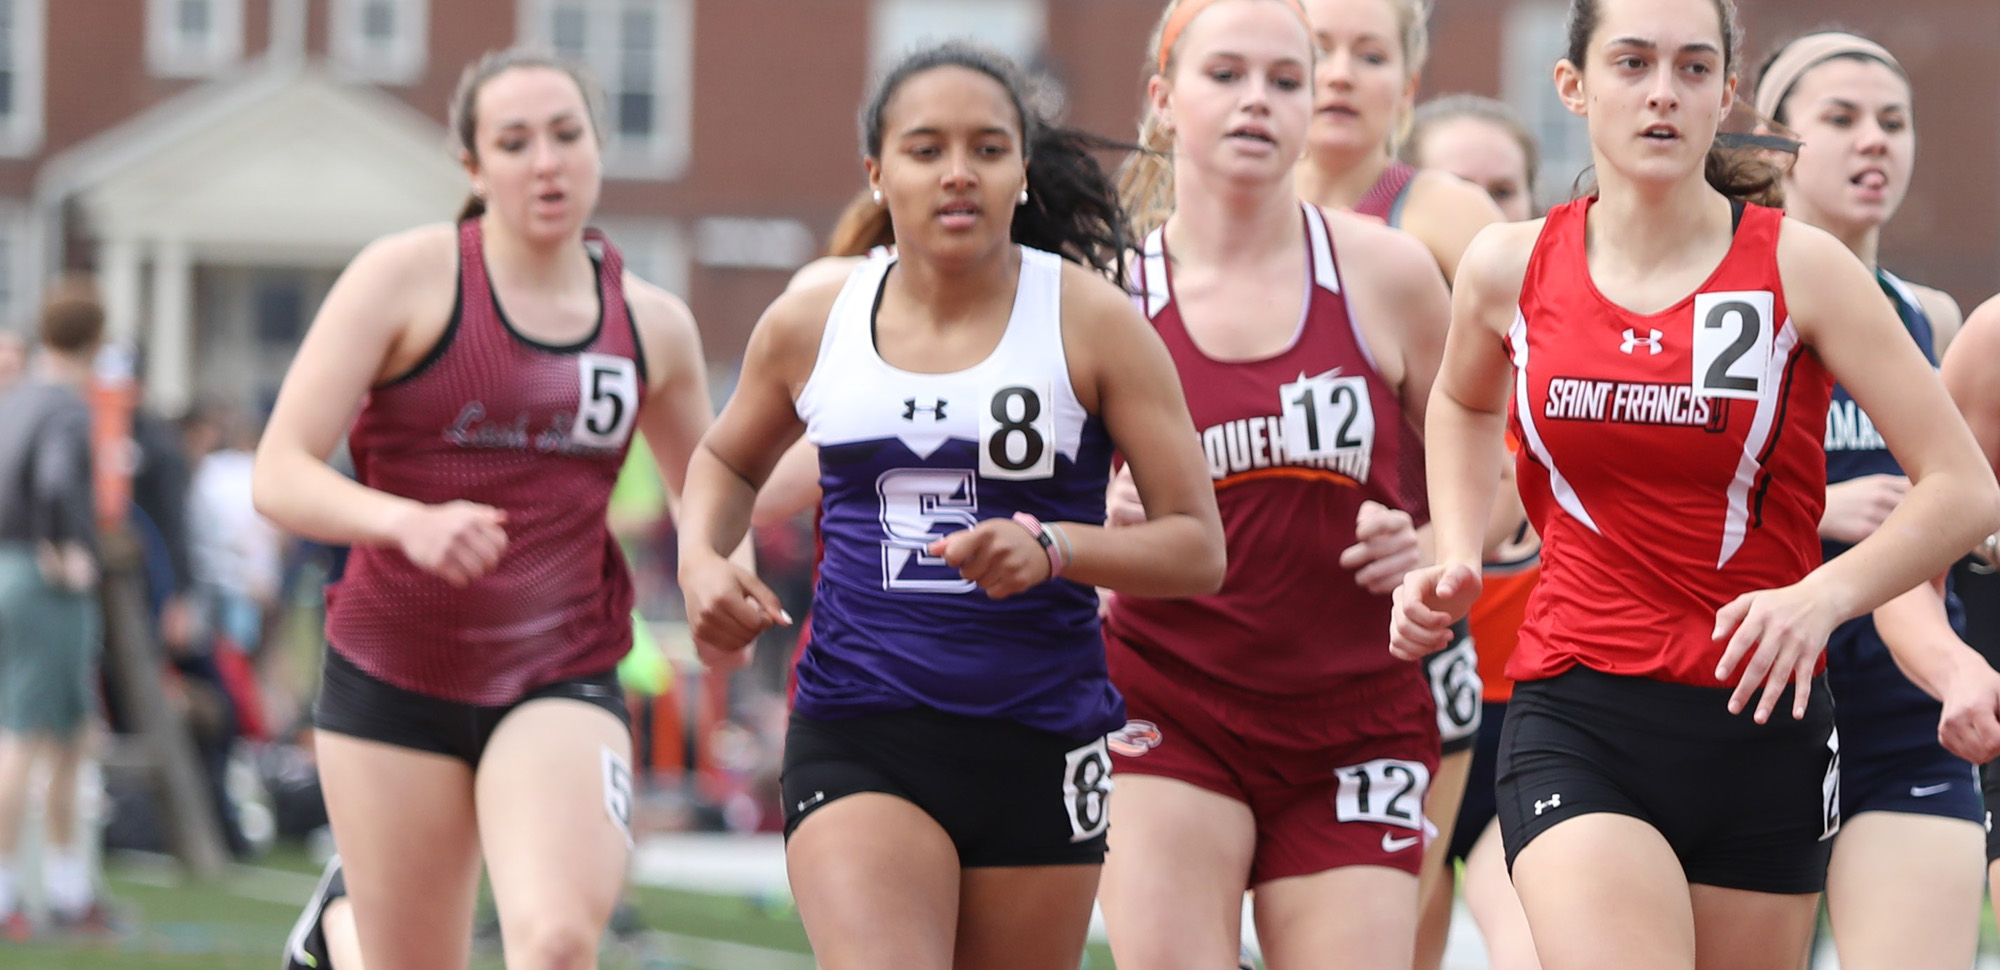 Junior Nora Boussatta won the 800 meter run on Saturday for the Royals at the Monarch Open. © Photo by Timothy R. Dougherty / doubleeaglephotography.com